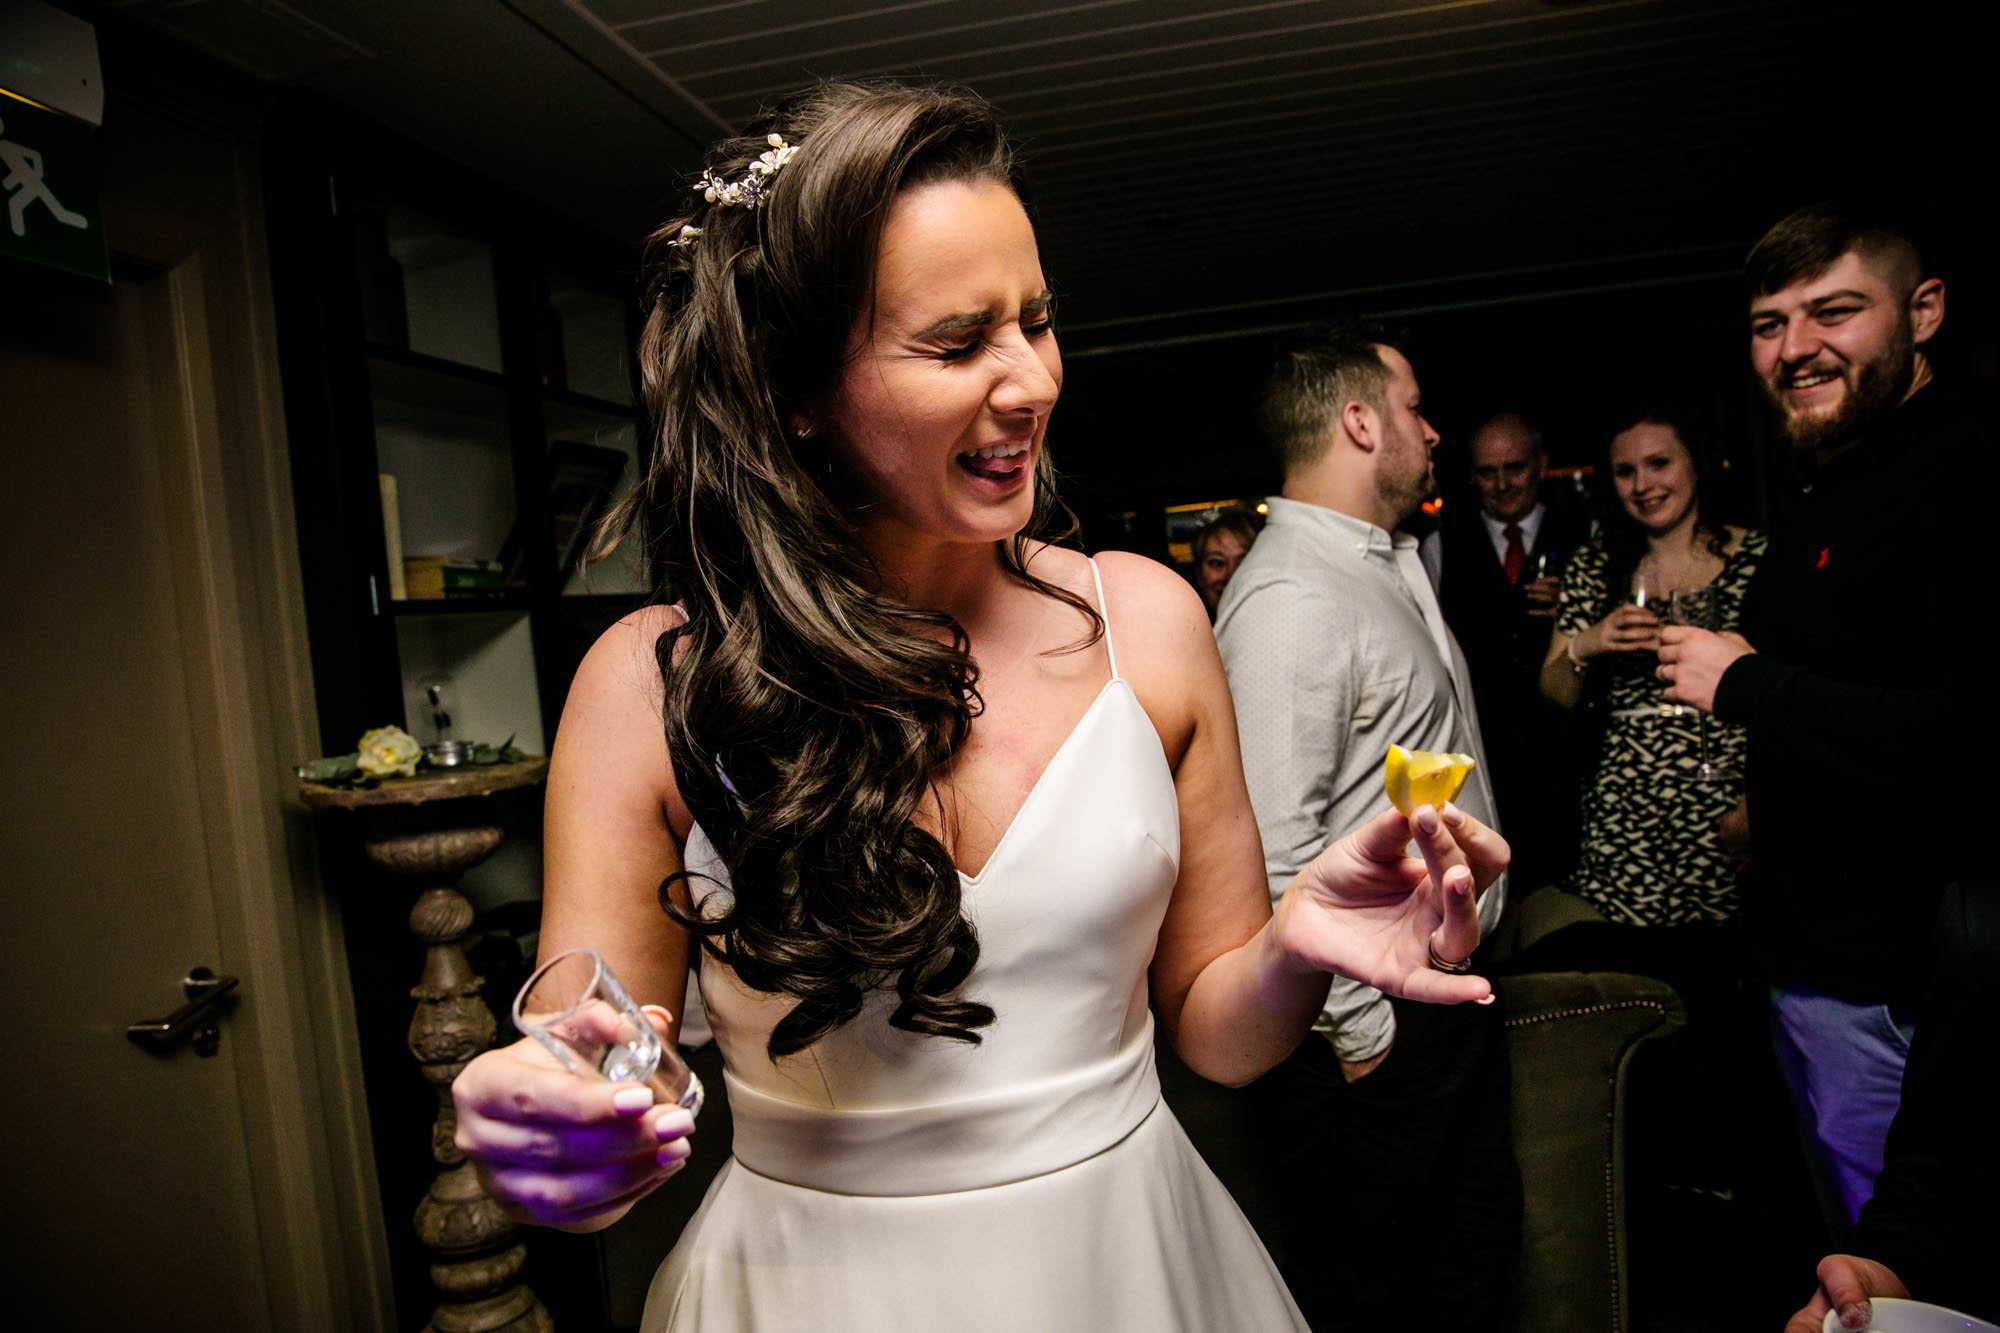 Manchester Fun Wedding Photography